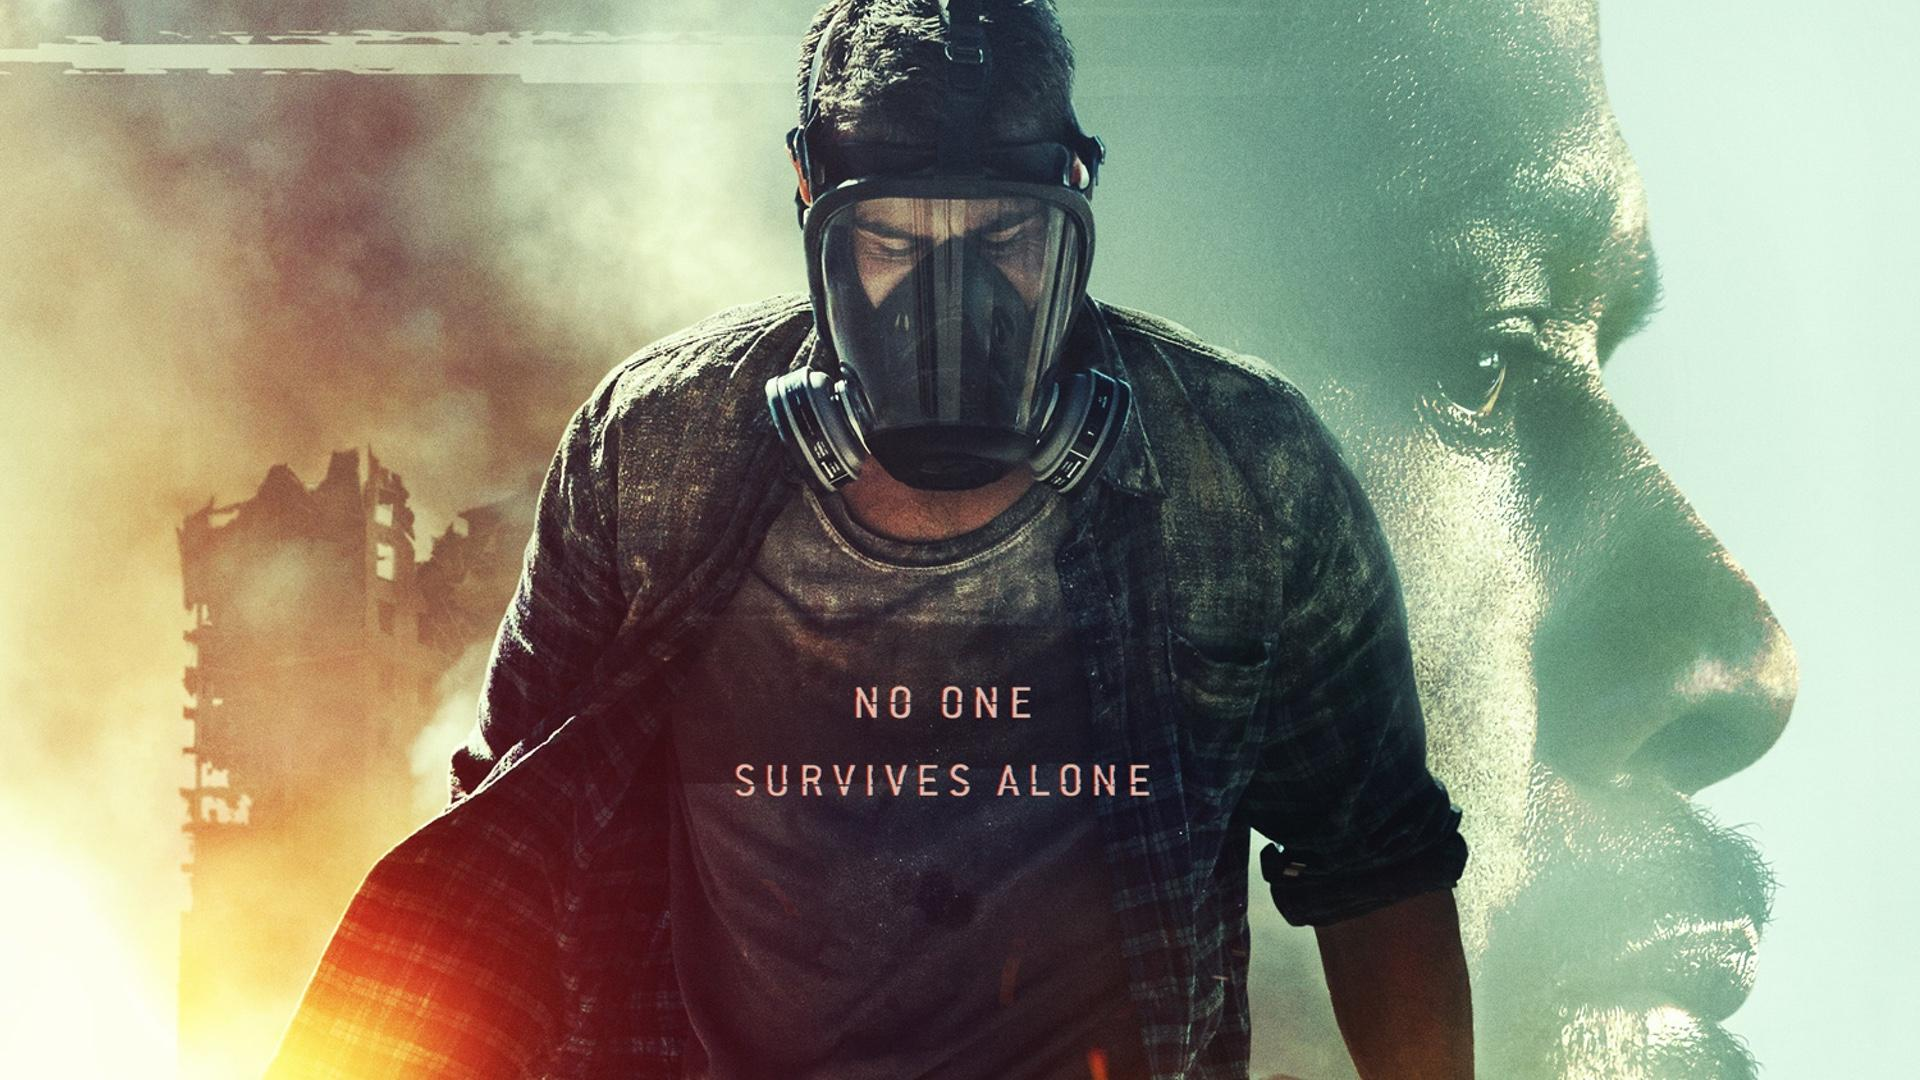 Intense Trailer For Netflix's Apocalyptic Film HOW IT ENDS with Theo ...